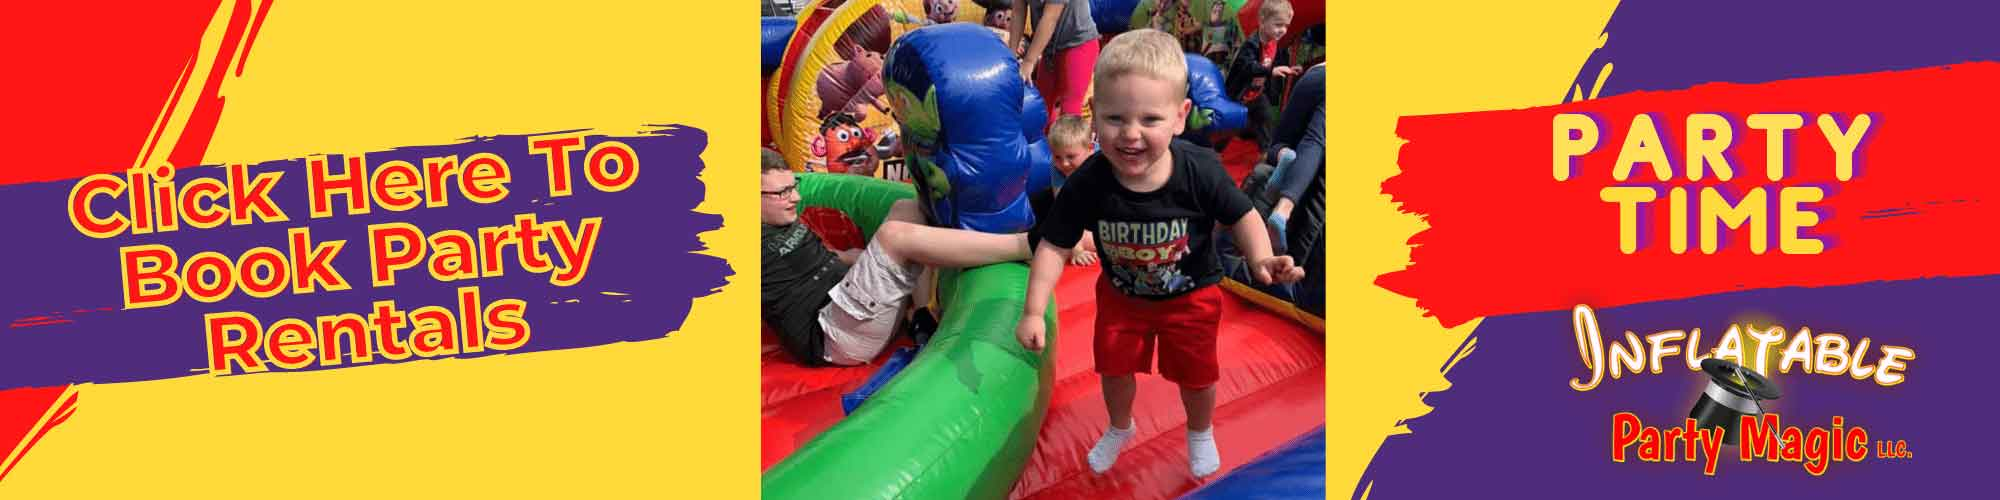 Bounce House Rentals Cleburne and DFW Party Rentals Book Now